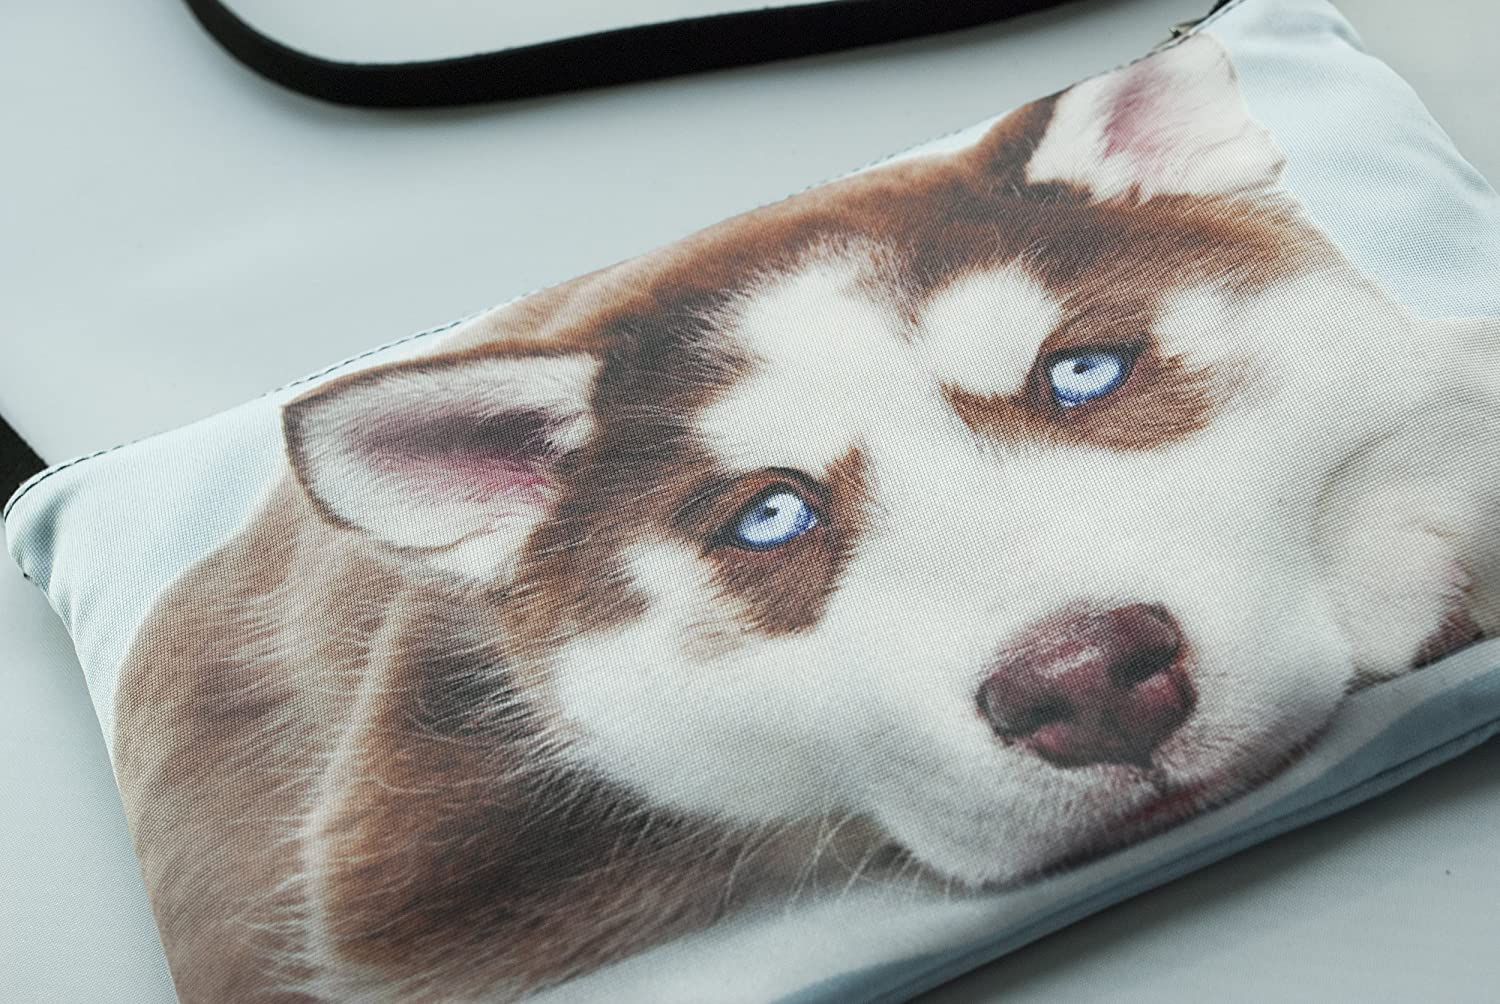 Husky dog purse, cross body bag, phone bag, shoulder bag, hipster